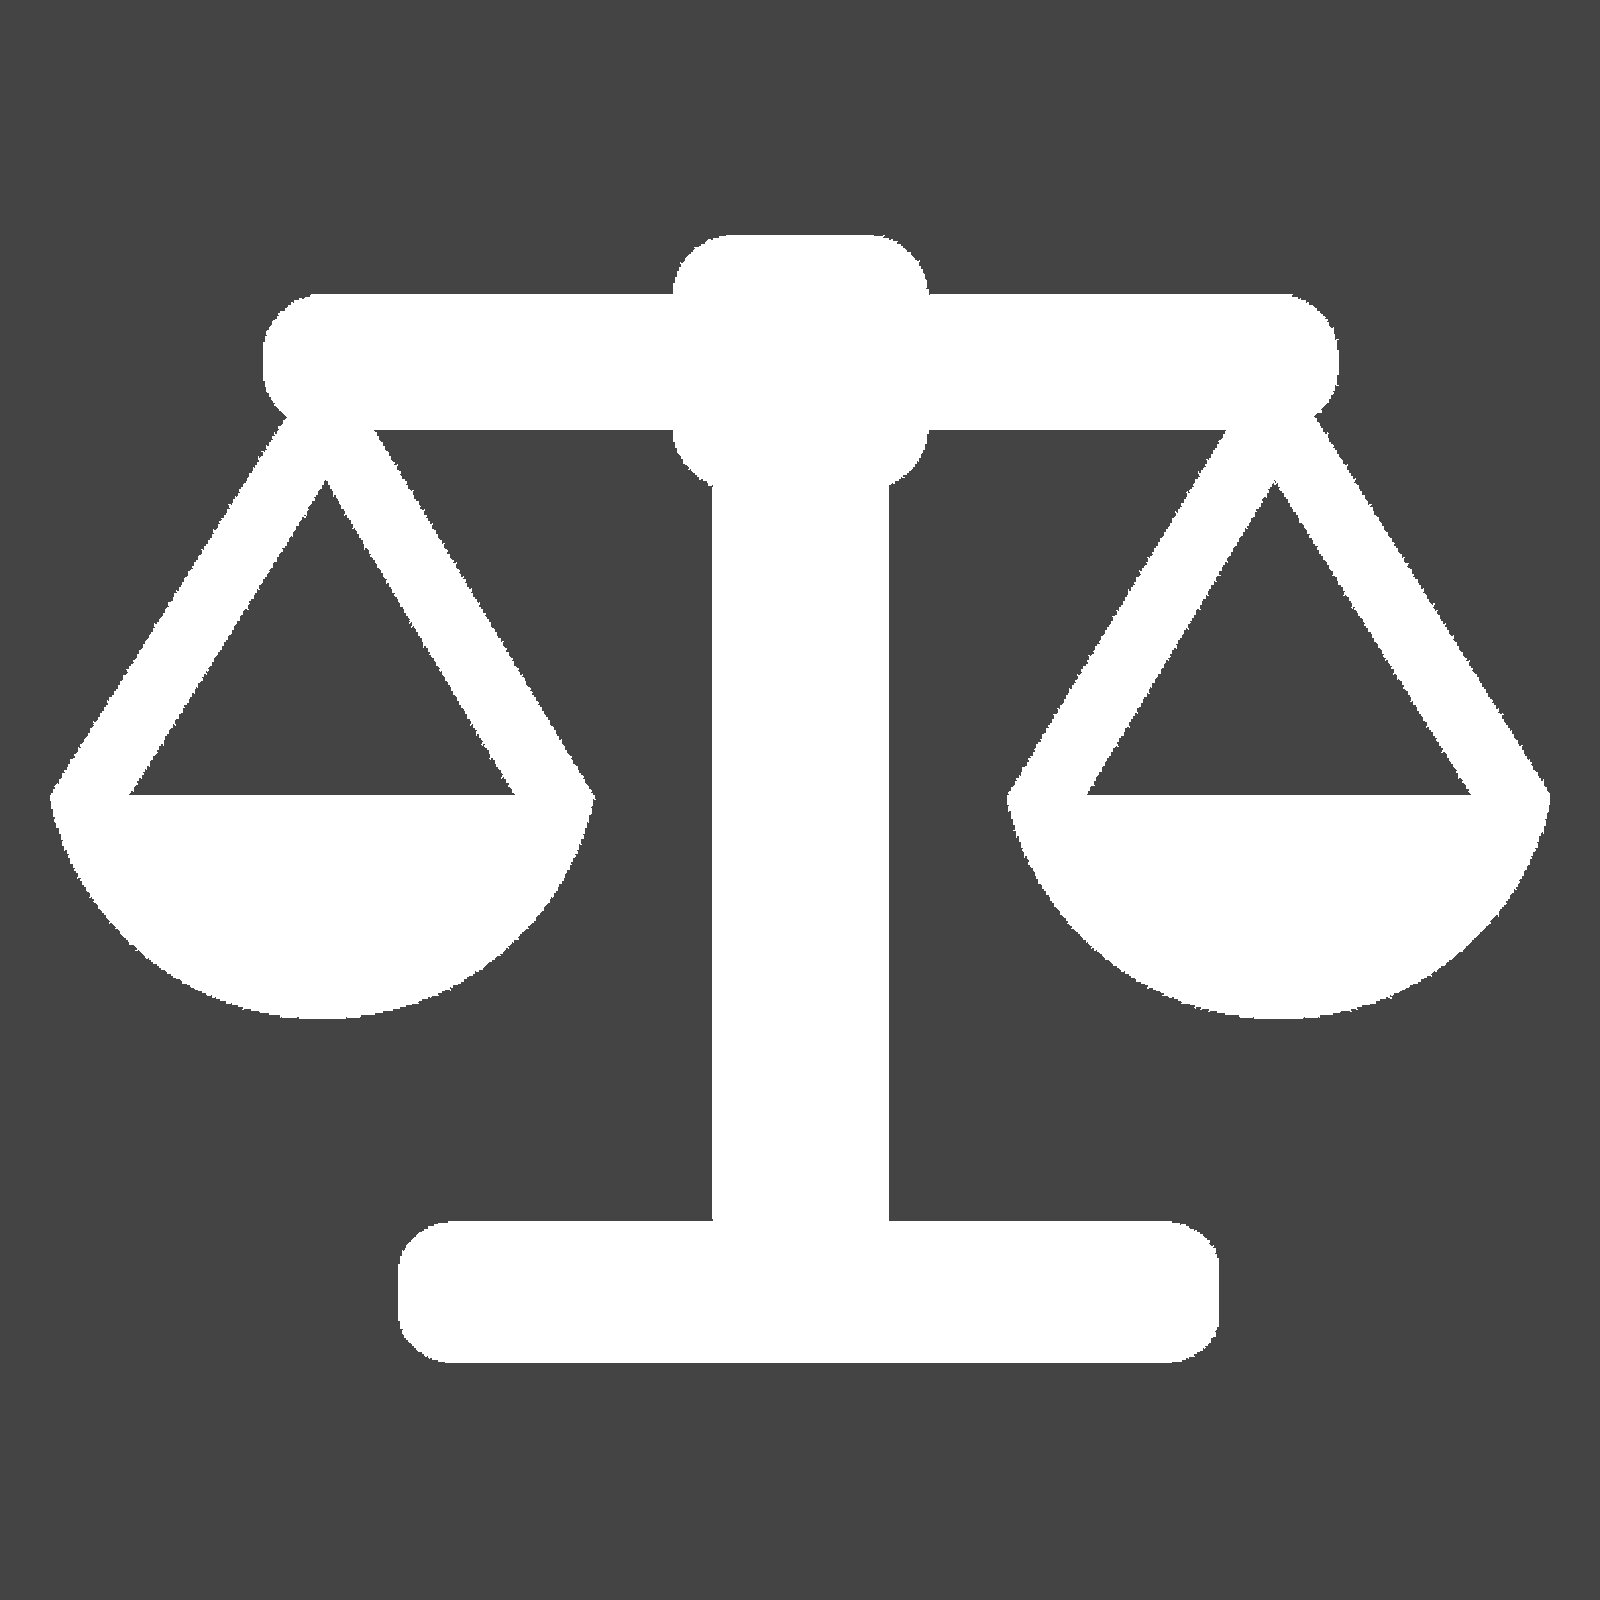 Icon showing a scale to convey weight